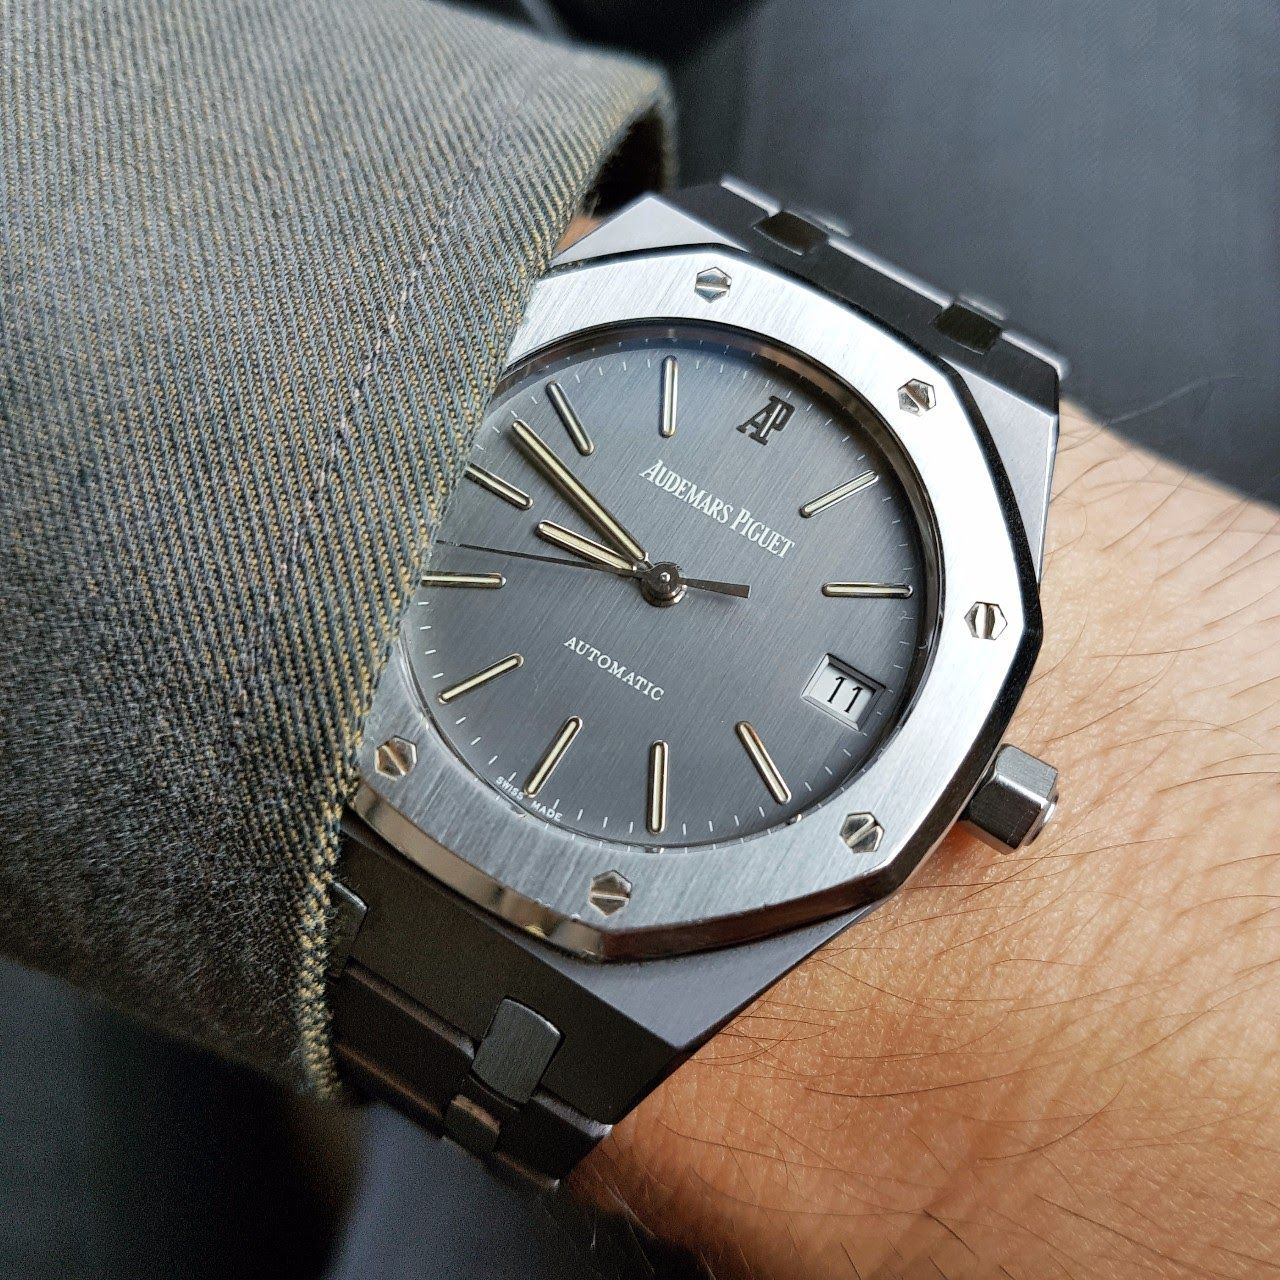 size 40 bb4af b9522 Audemars Piguet - Sharing a pic of rarely seen 2-tone Royal ...